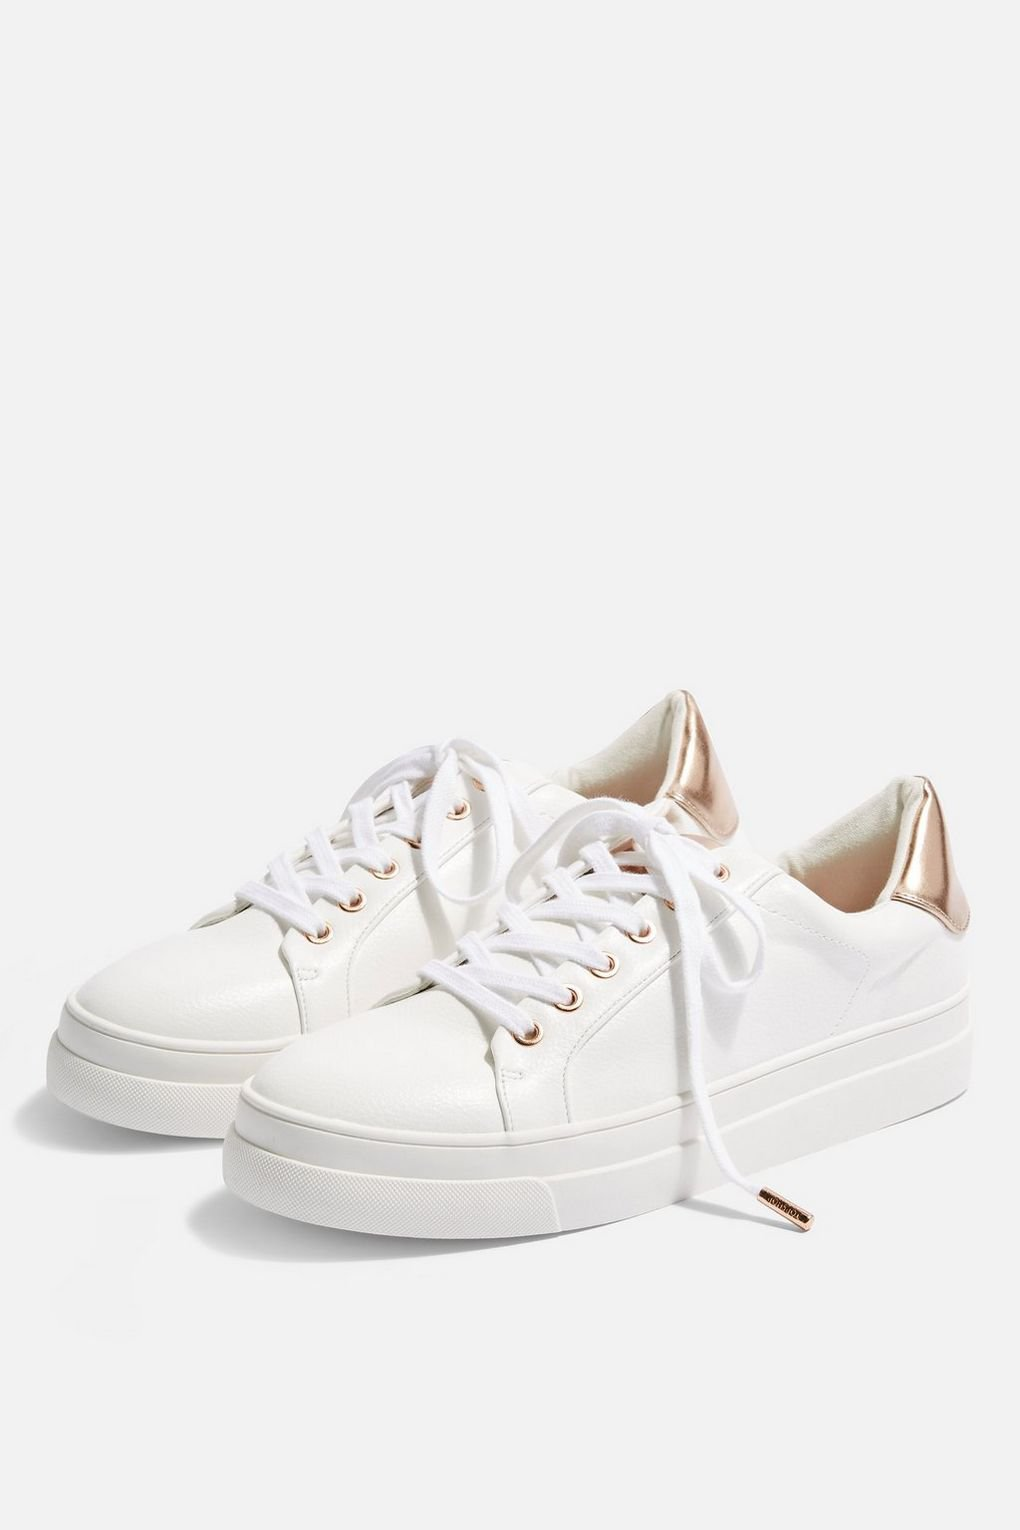 CANDY Lace Up Trainers - Sneakers - Shoes - Topshop USA